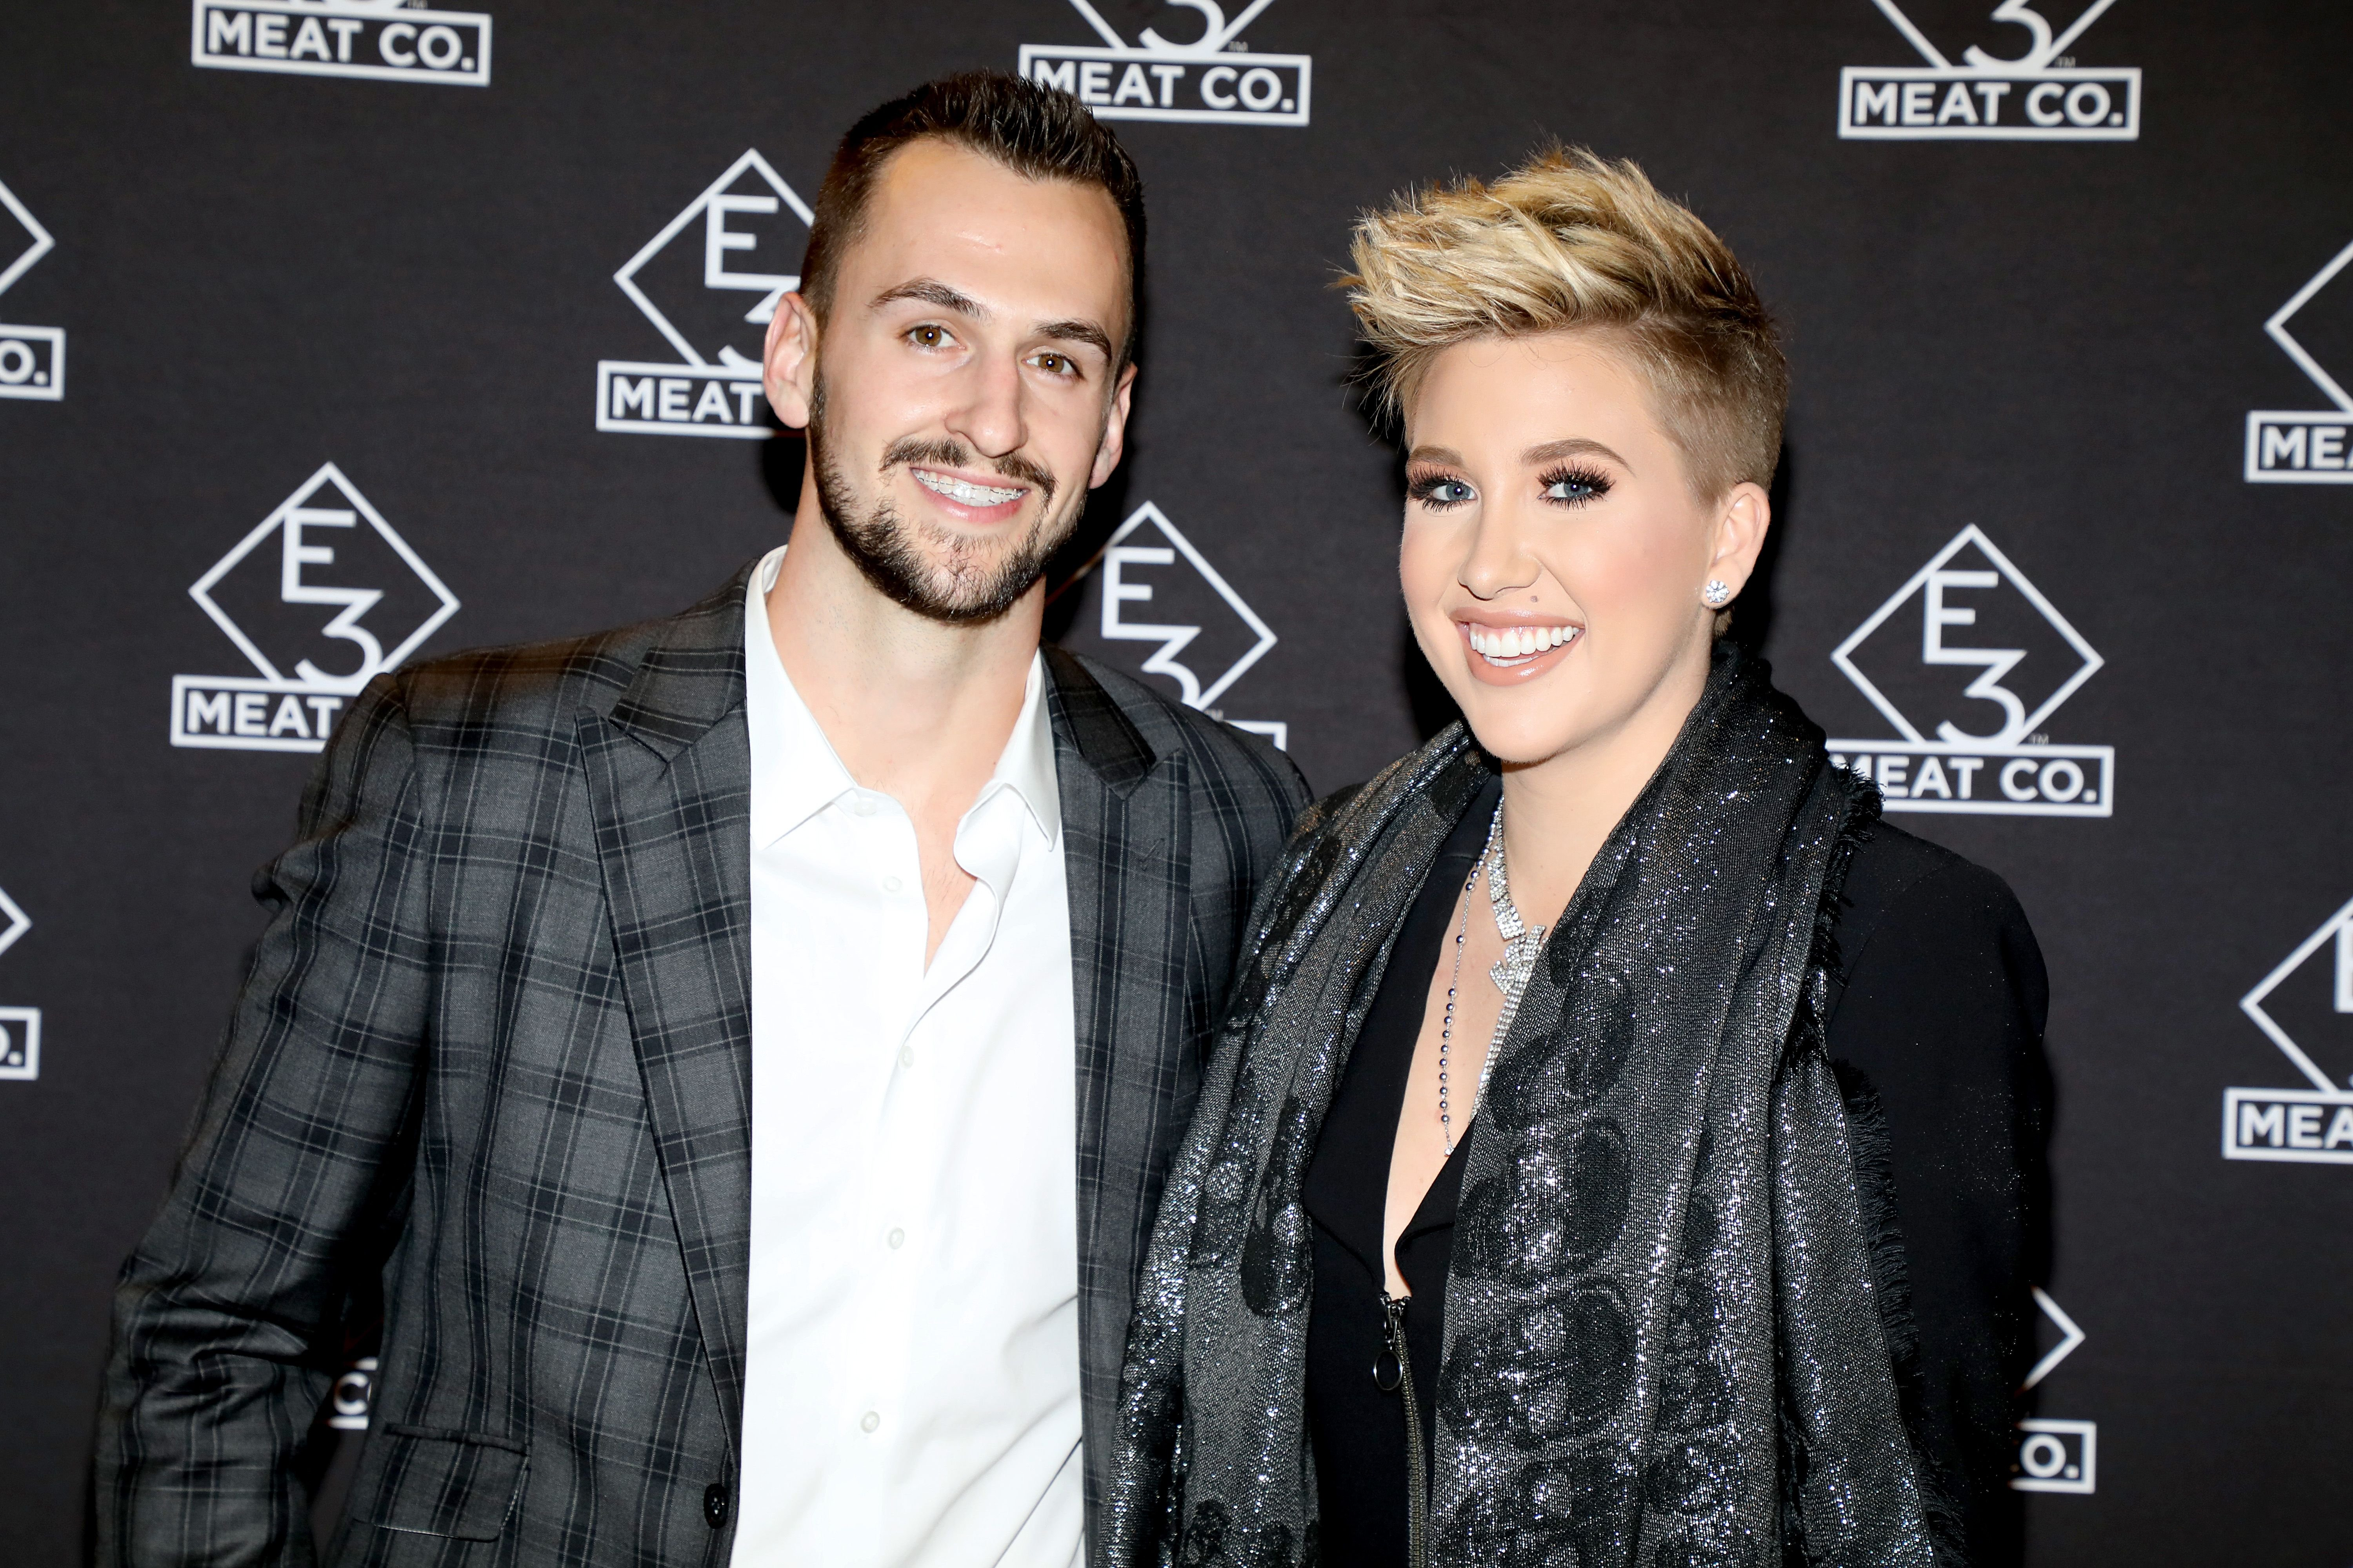 Nic Kerdiles and Savannah Chrisley attend the grand opening of E3 Chophouse Nashville on November 20, 2019, in Nashville, Tennessee. | Source: Getty Images